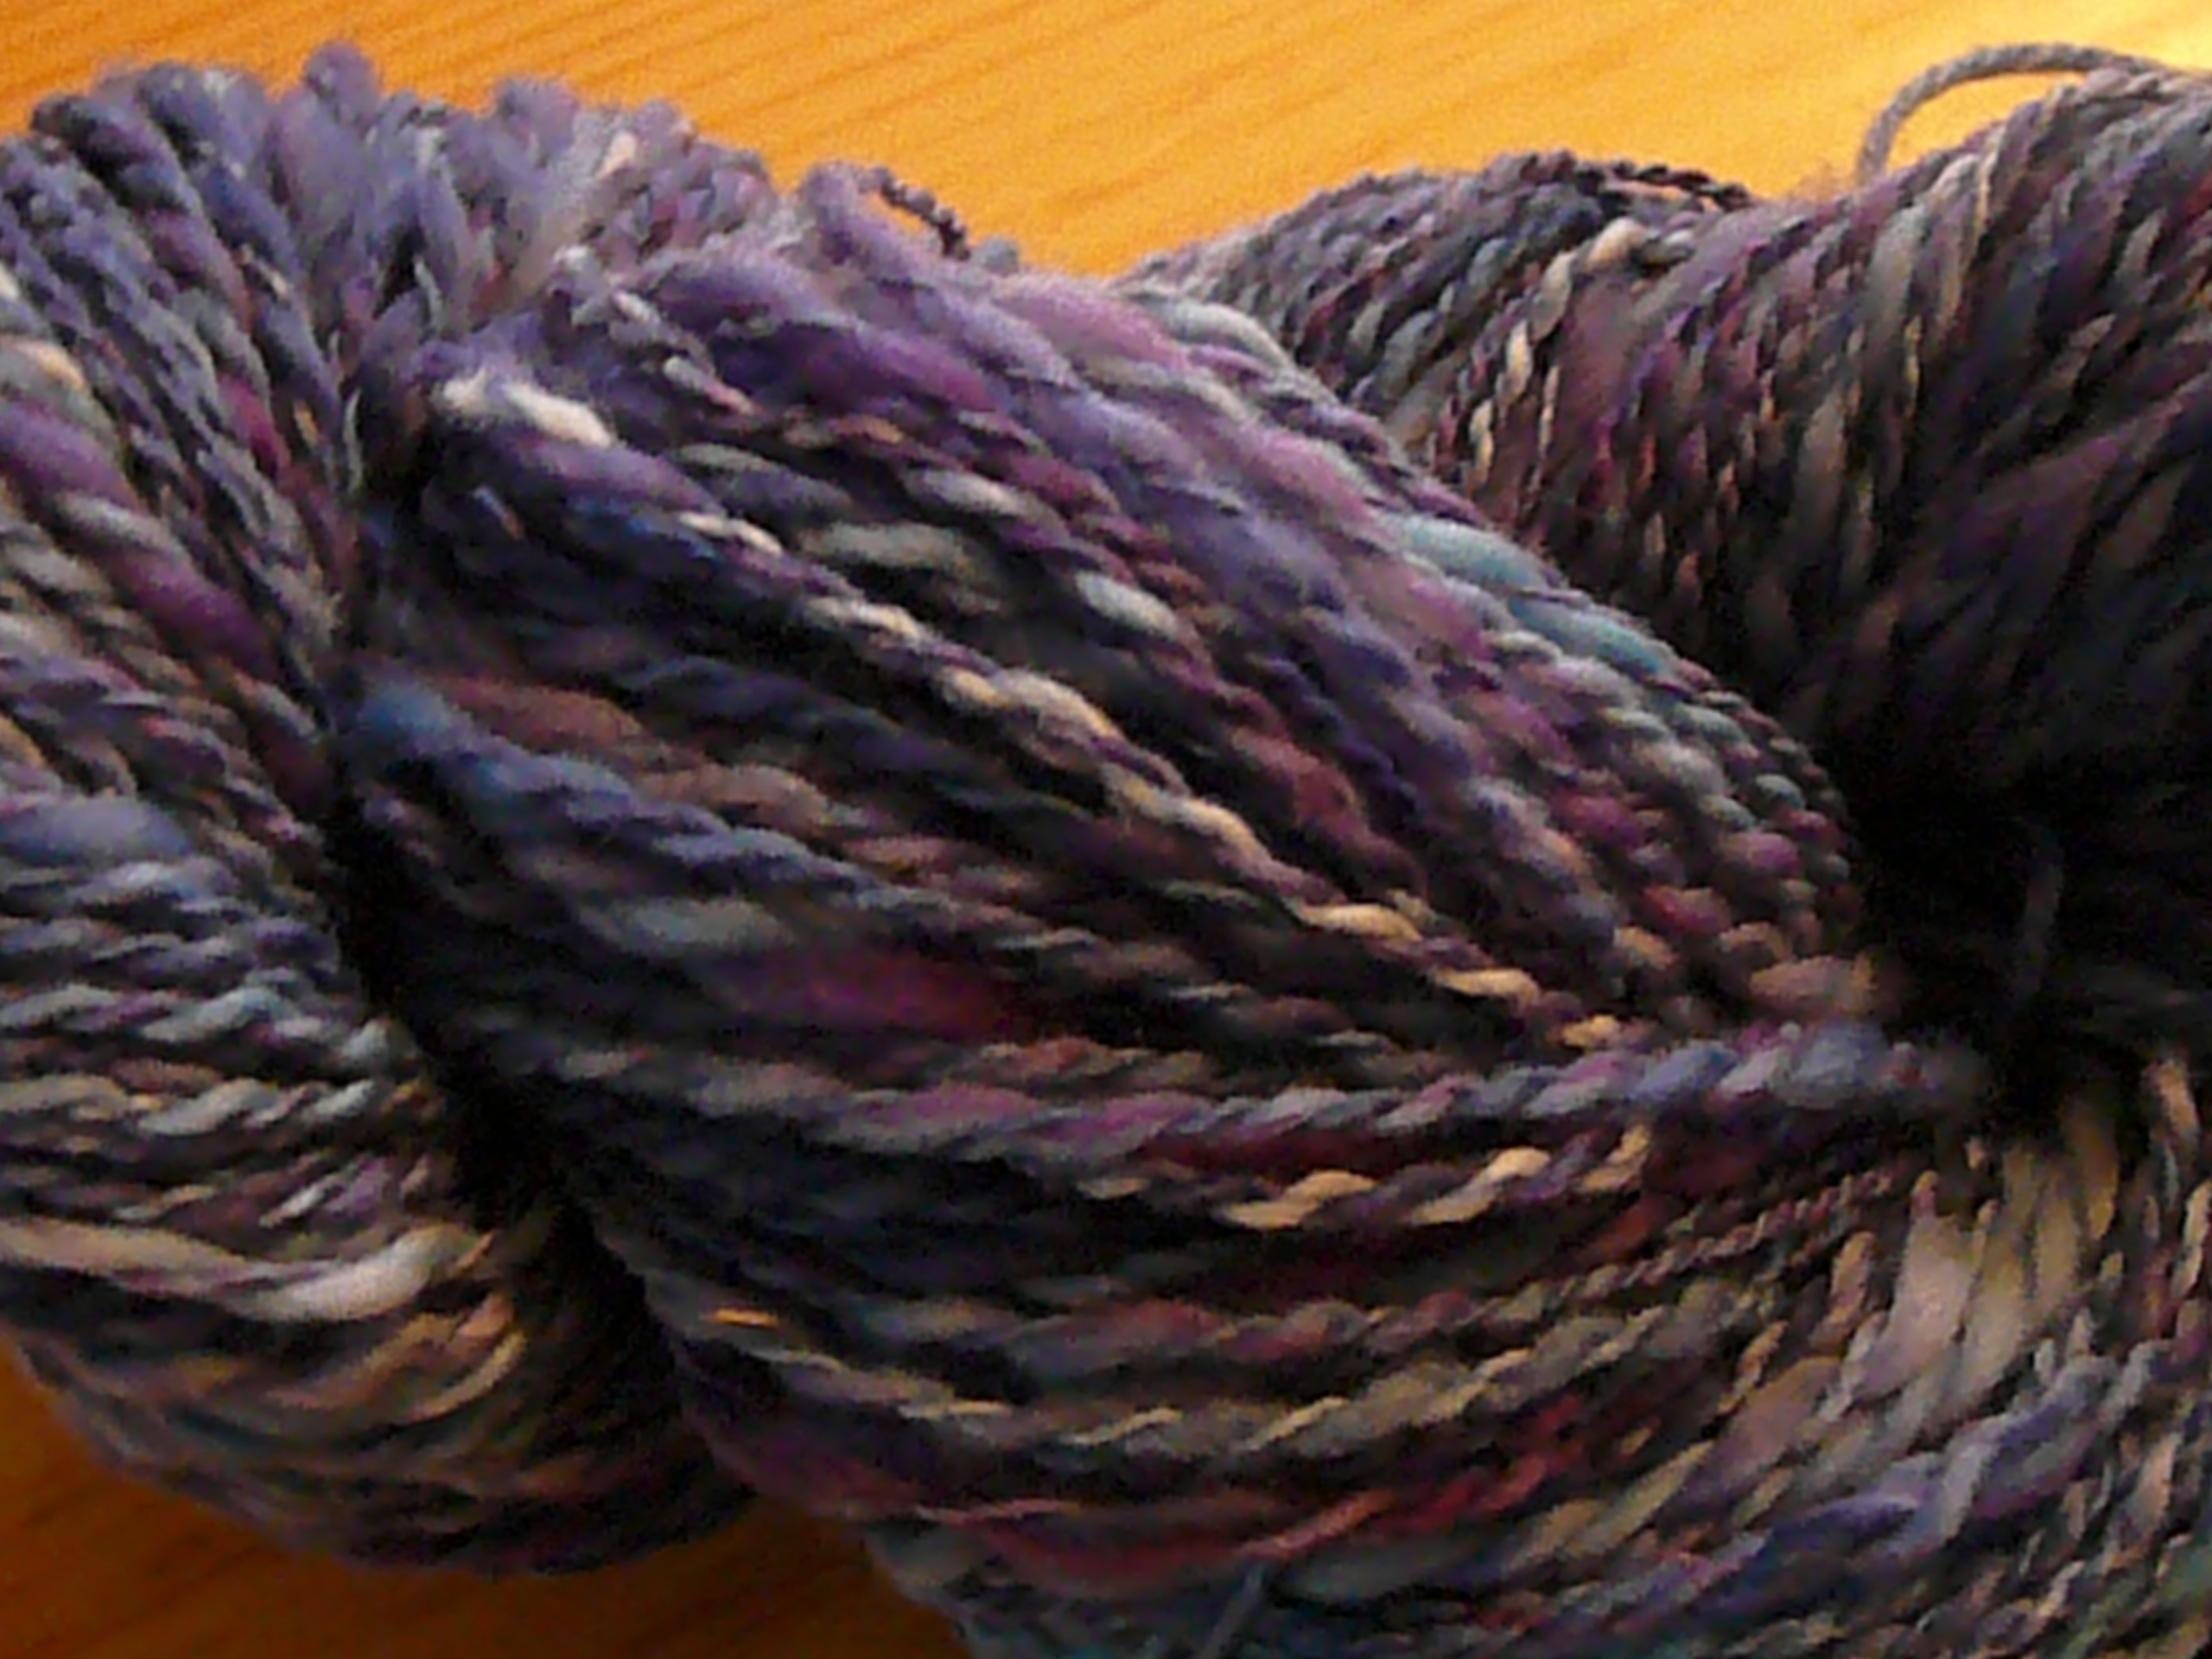 Close up of skein